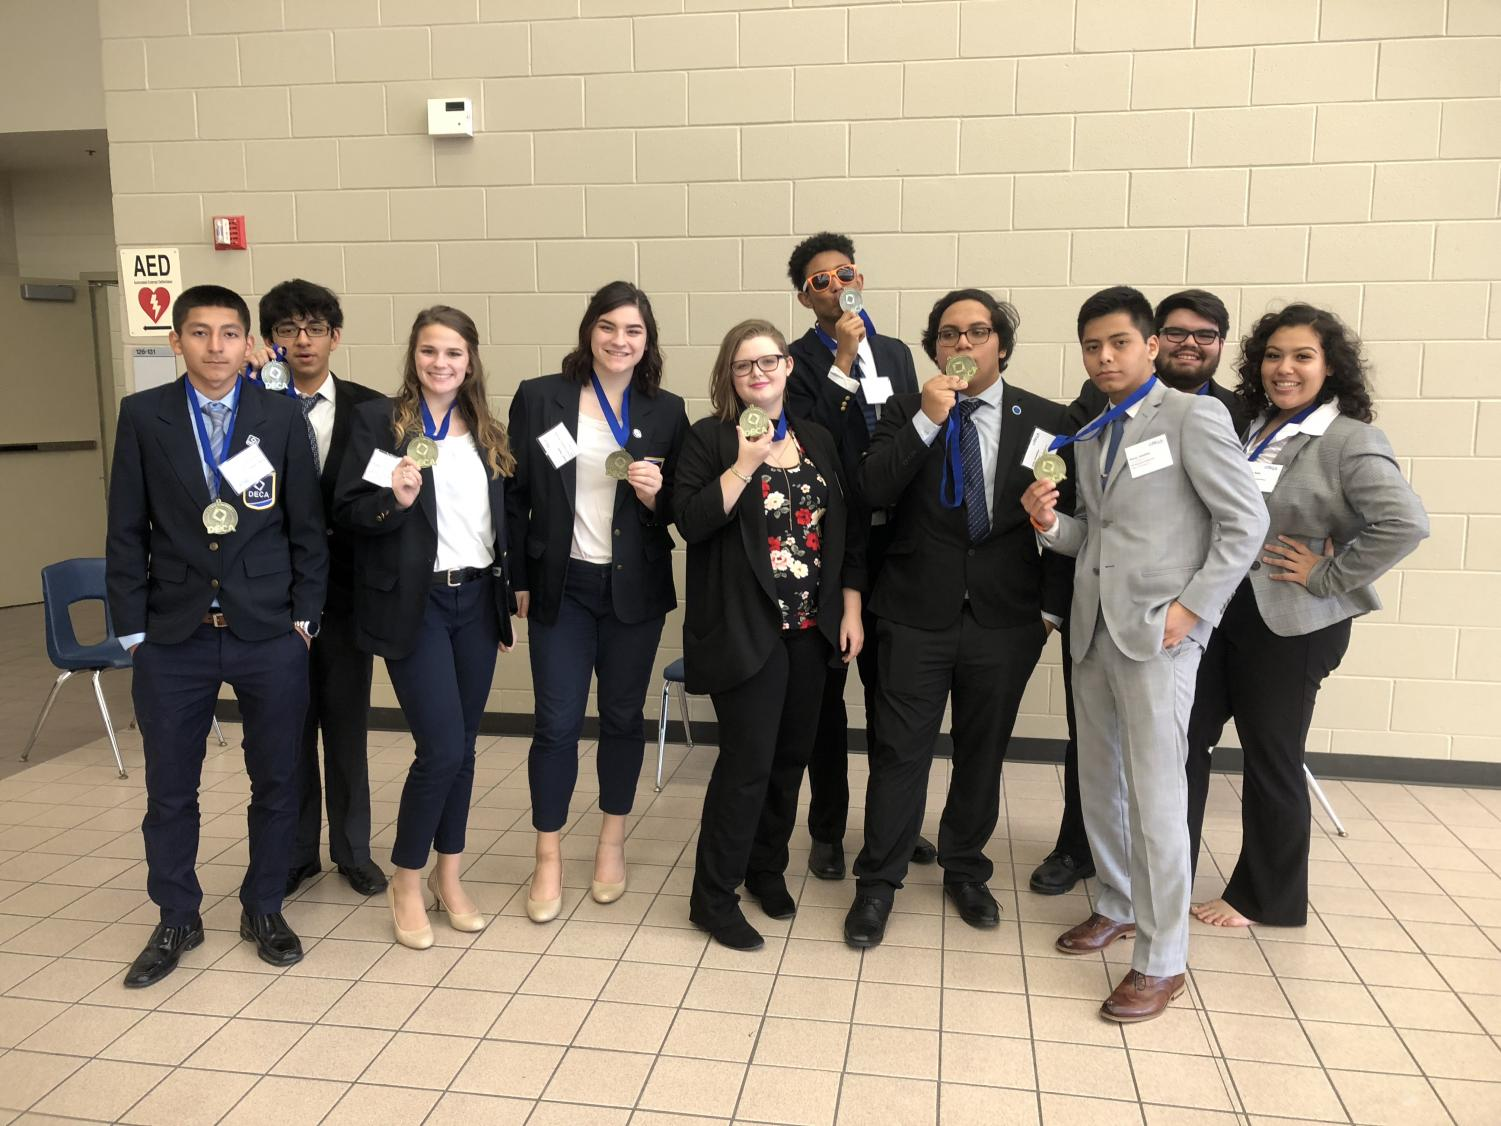 STATE-BOUND 10 DECA members qualified for the state competition which was held in Dallas, TX. Members include: Lazaro Yanez, Jacob Hernandez, Tori McVey, Shaylin Ardoin, Katrina Kelly, Nicholas Davis, Jonathan Leiva, Jonathan Ponce, Lazaro Villalobos, Karla Chavarria